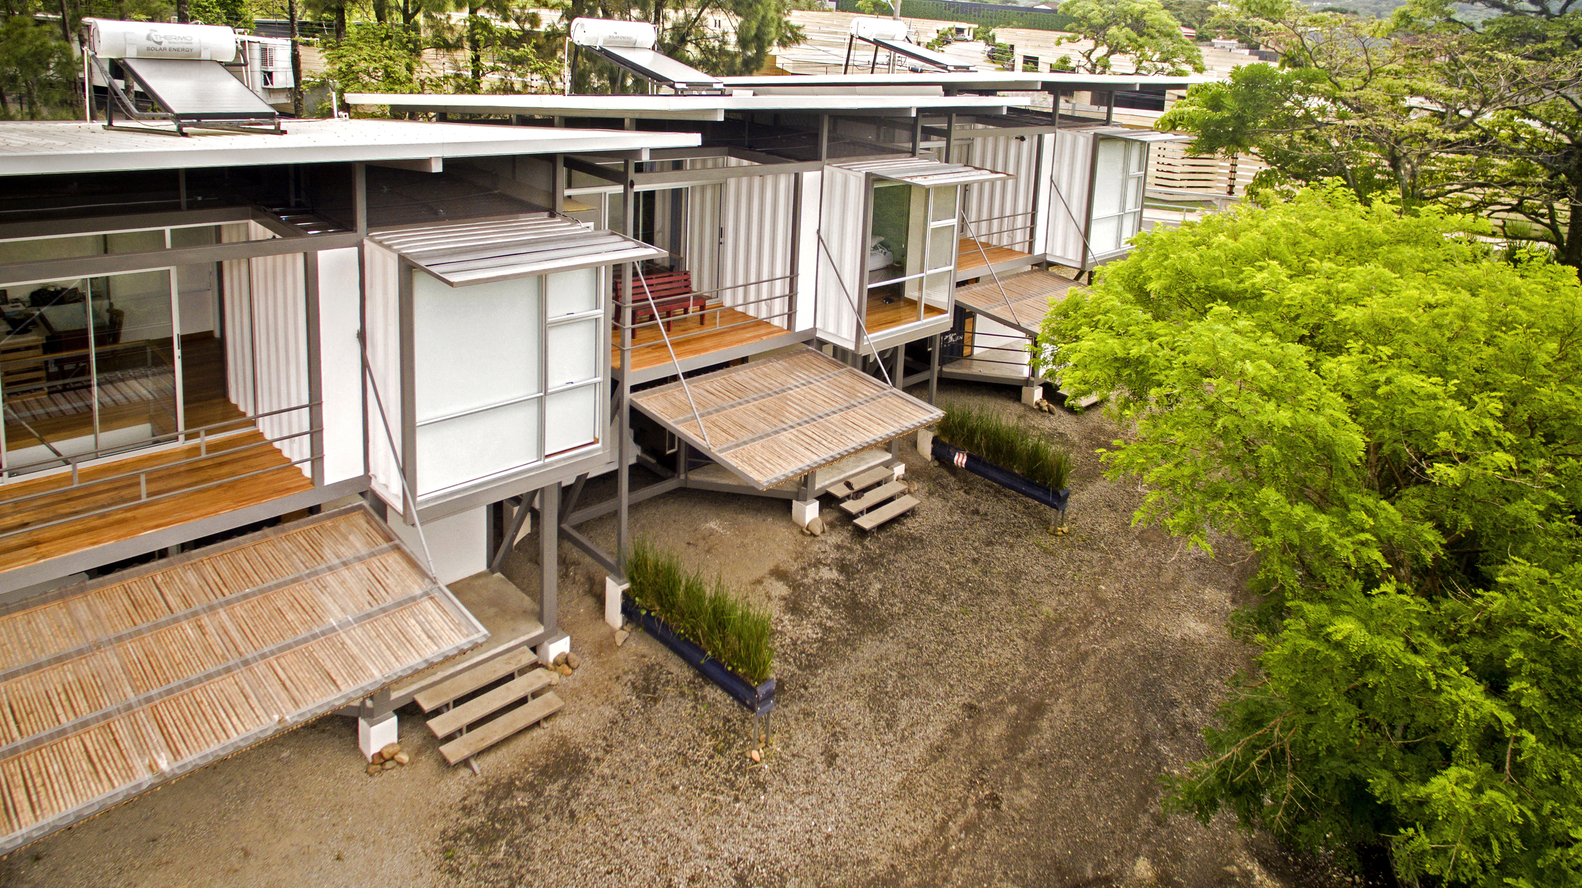 Used shipping containers turned into passively-cooled homes